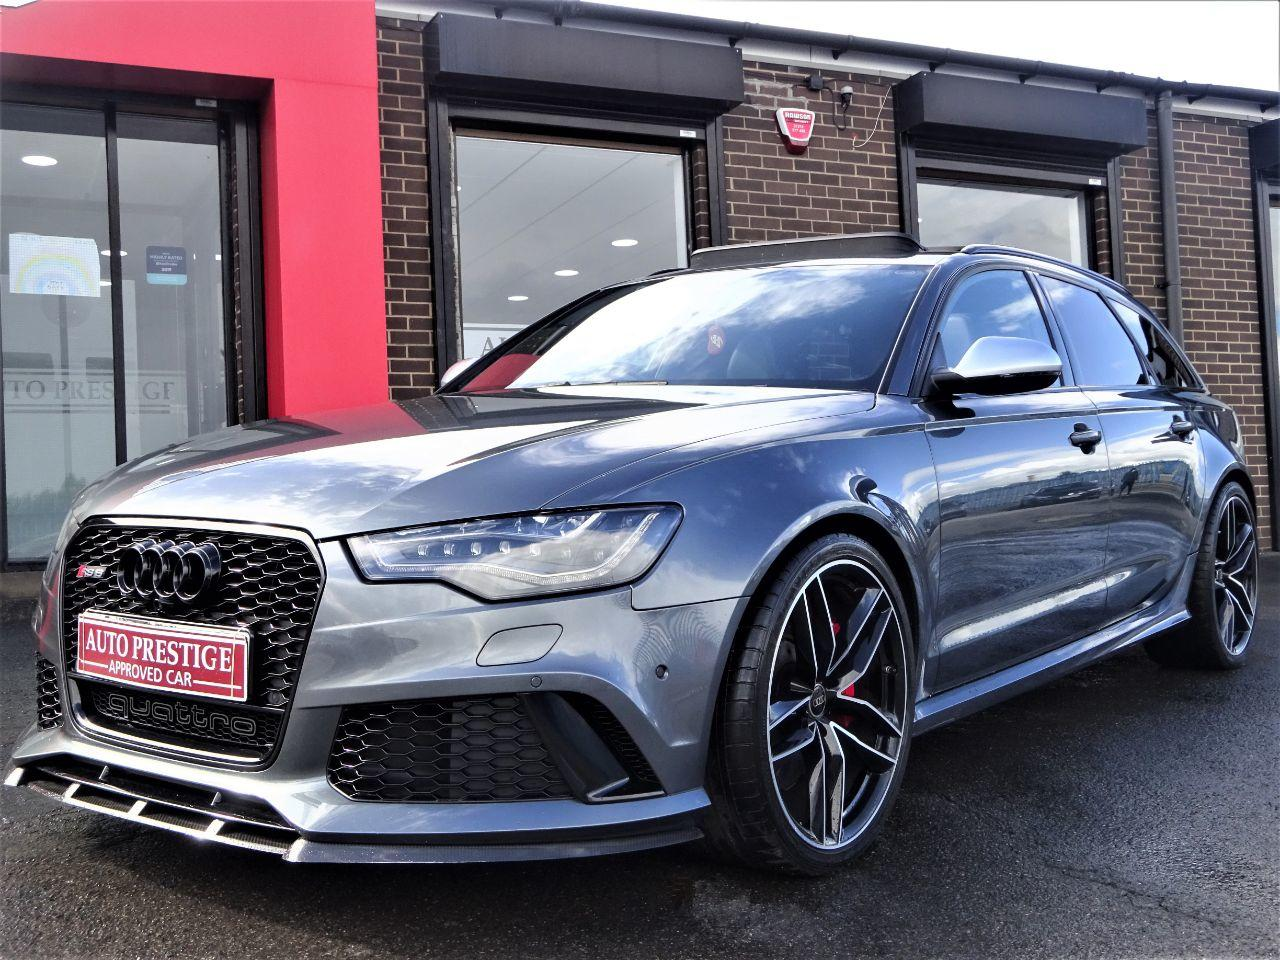 Audi RS6 4.0T FSI V8 Bi-Turbo RS6 Quattro 5dr Tip Auto HUGH SPEC PAN ROOF CAMERAS SPORTS EXHAUSTS BLACK PACK Estate Petrol Grey at Autoprestige Bradford